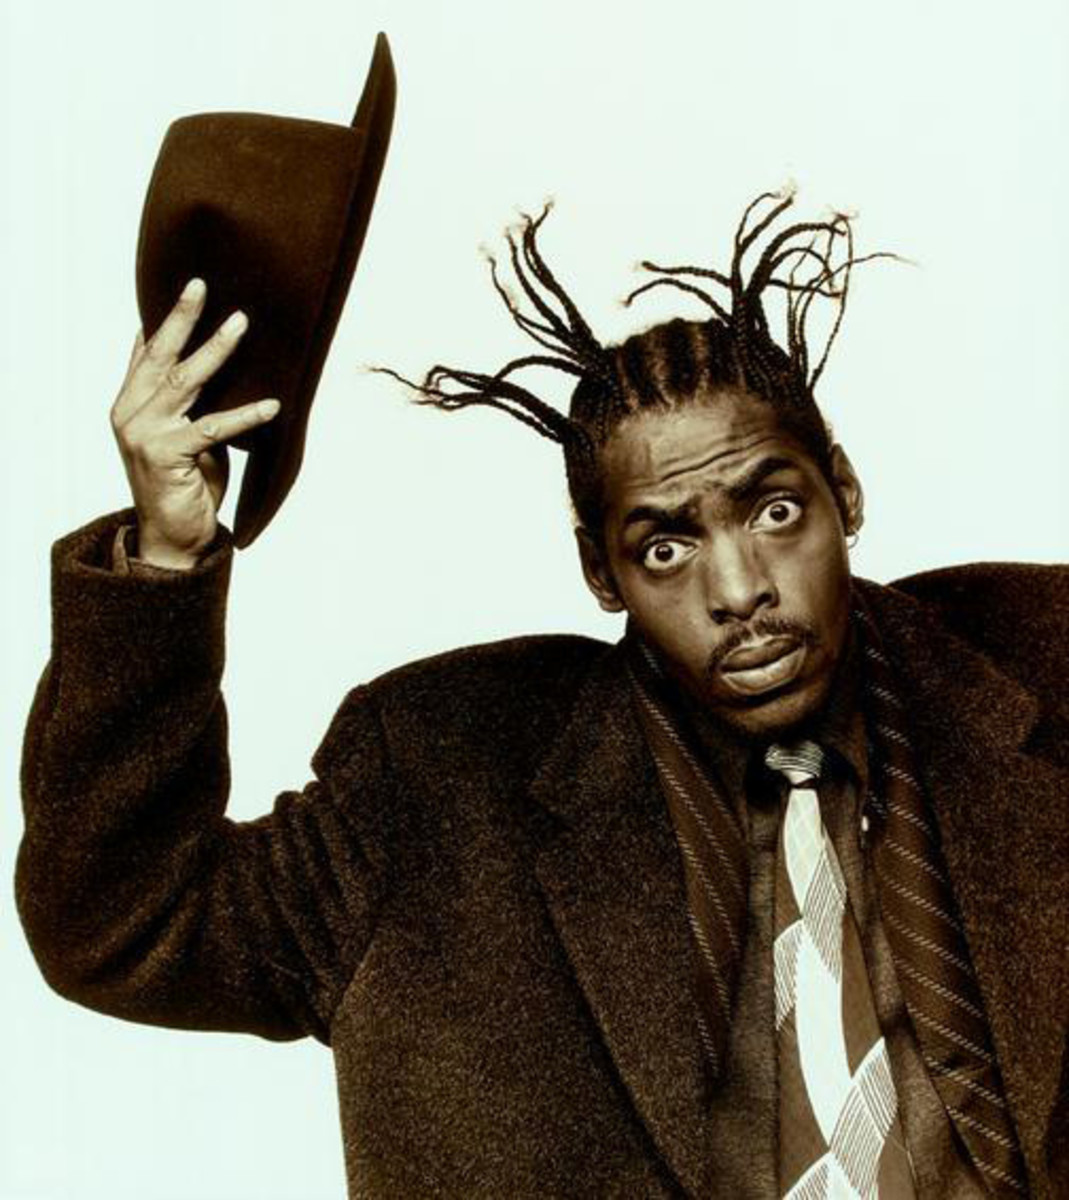 Coolio's bizarre cameo as a hyperactive cop feels like he paid a visit to Snoop Dogg before turning up on set...